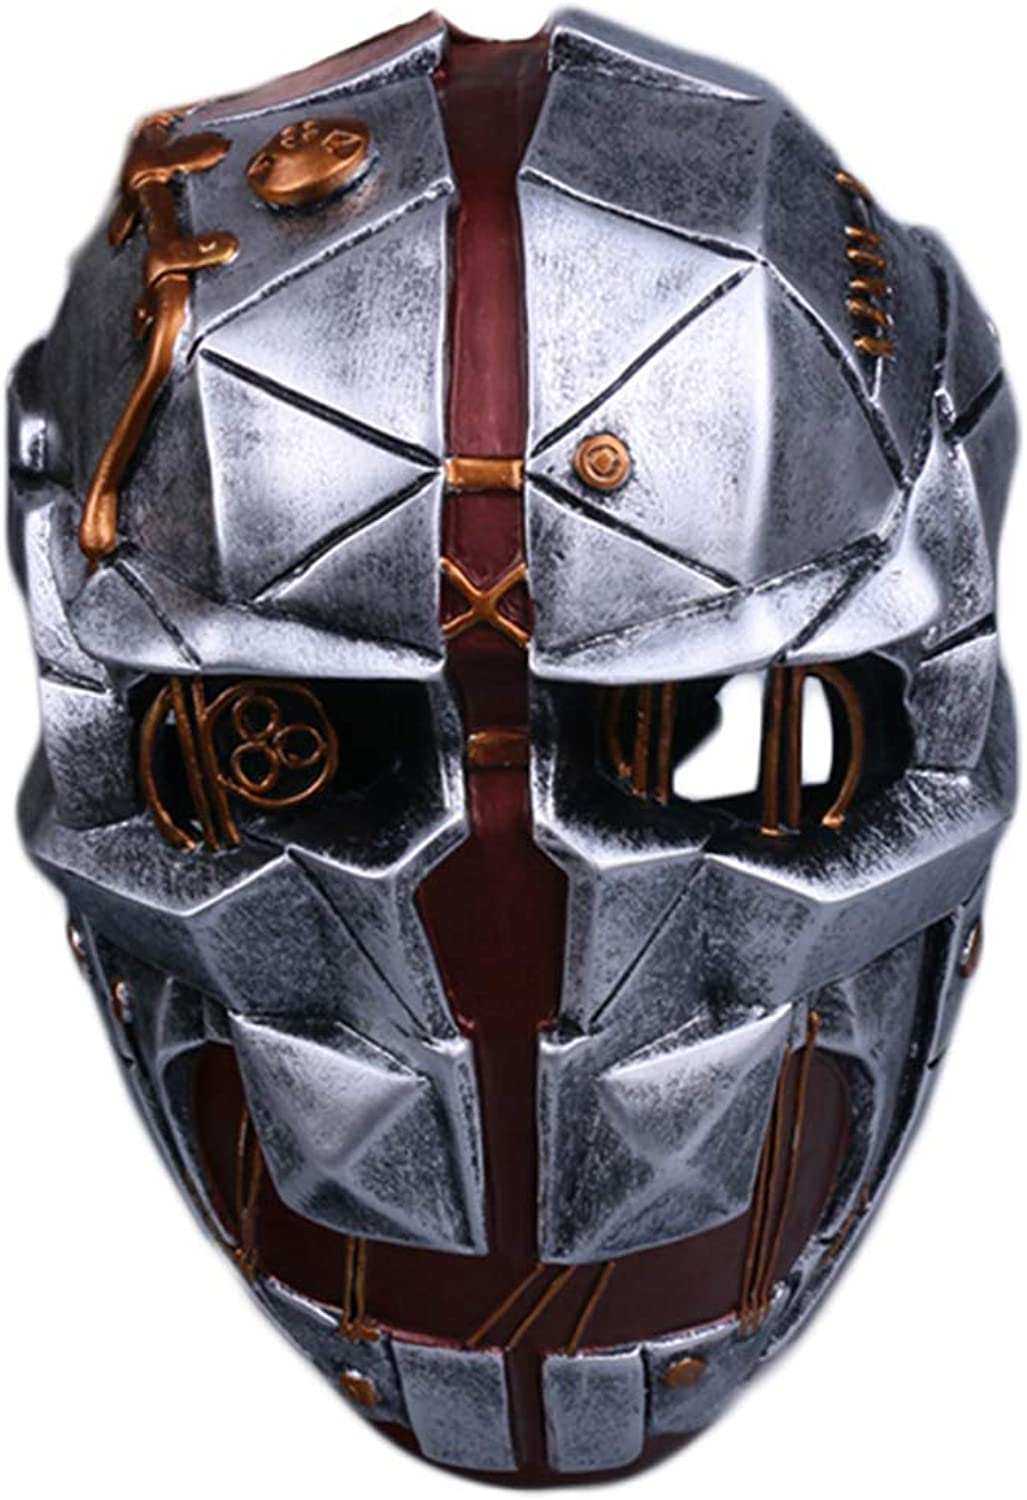 QQWE Dishonored Mask Game Cosplay Helmet Halloween Christmas Theme Party Movie Costume Prop FRP Masks,AOneSize